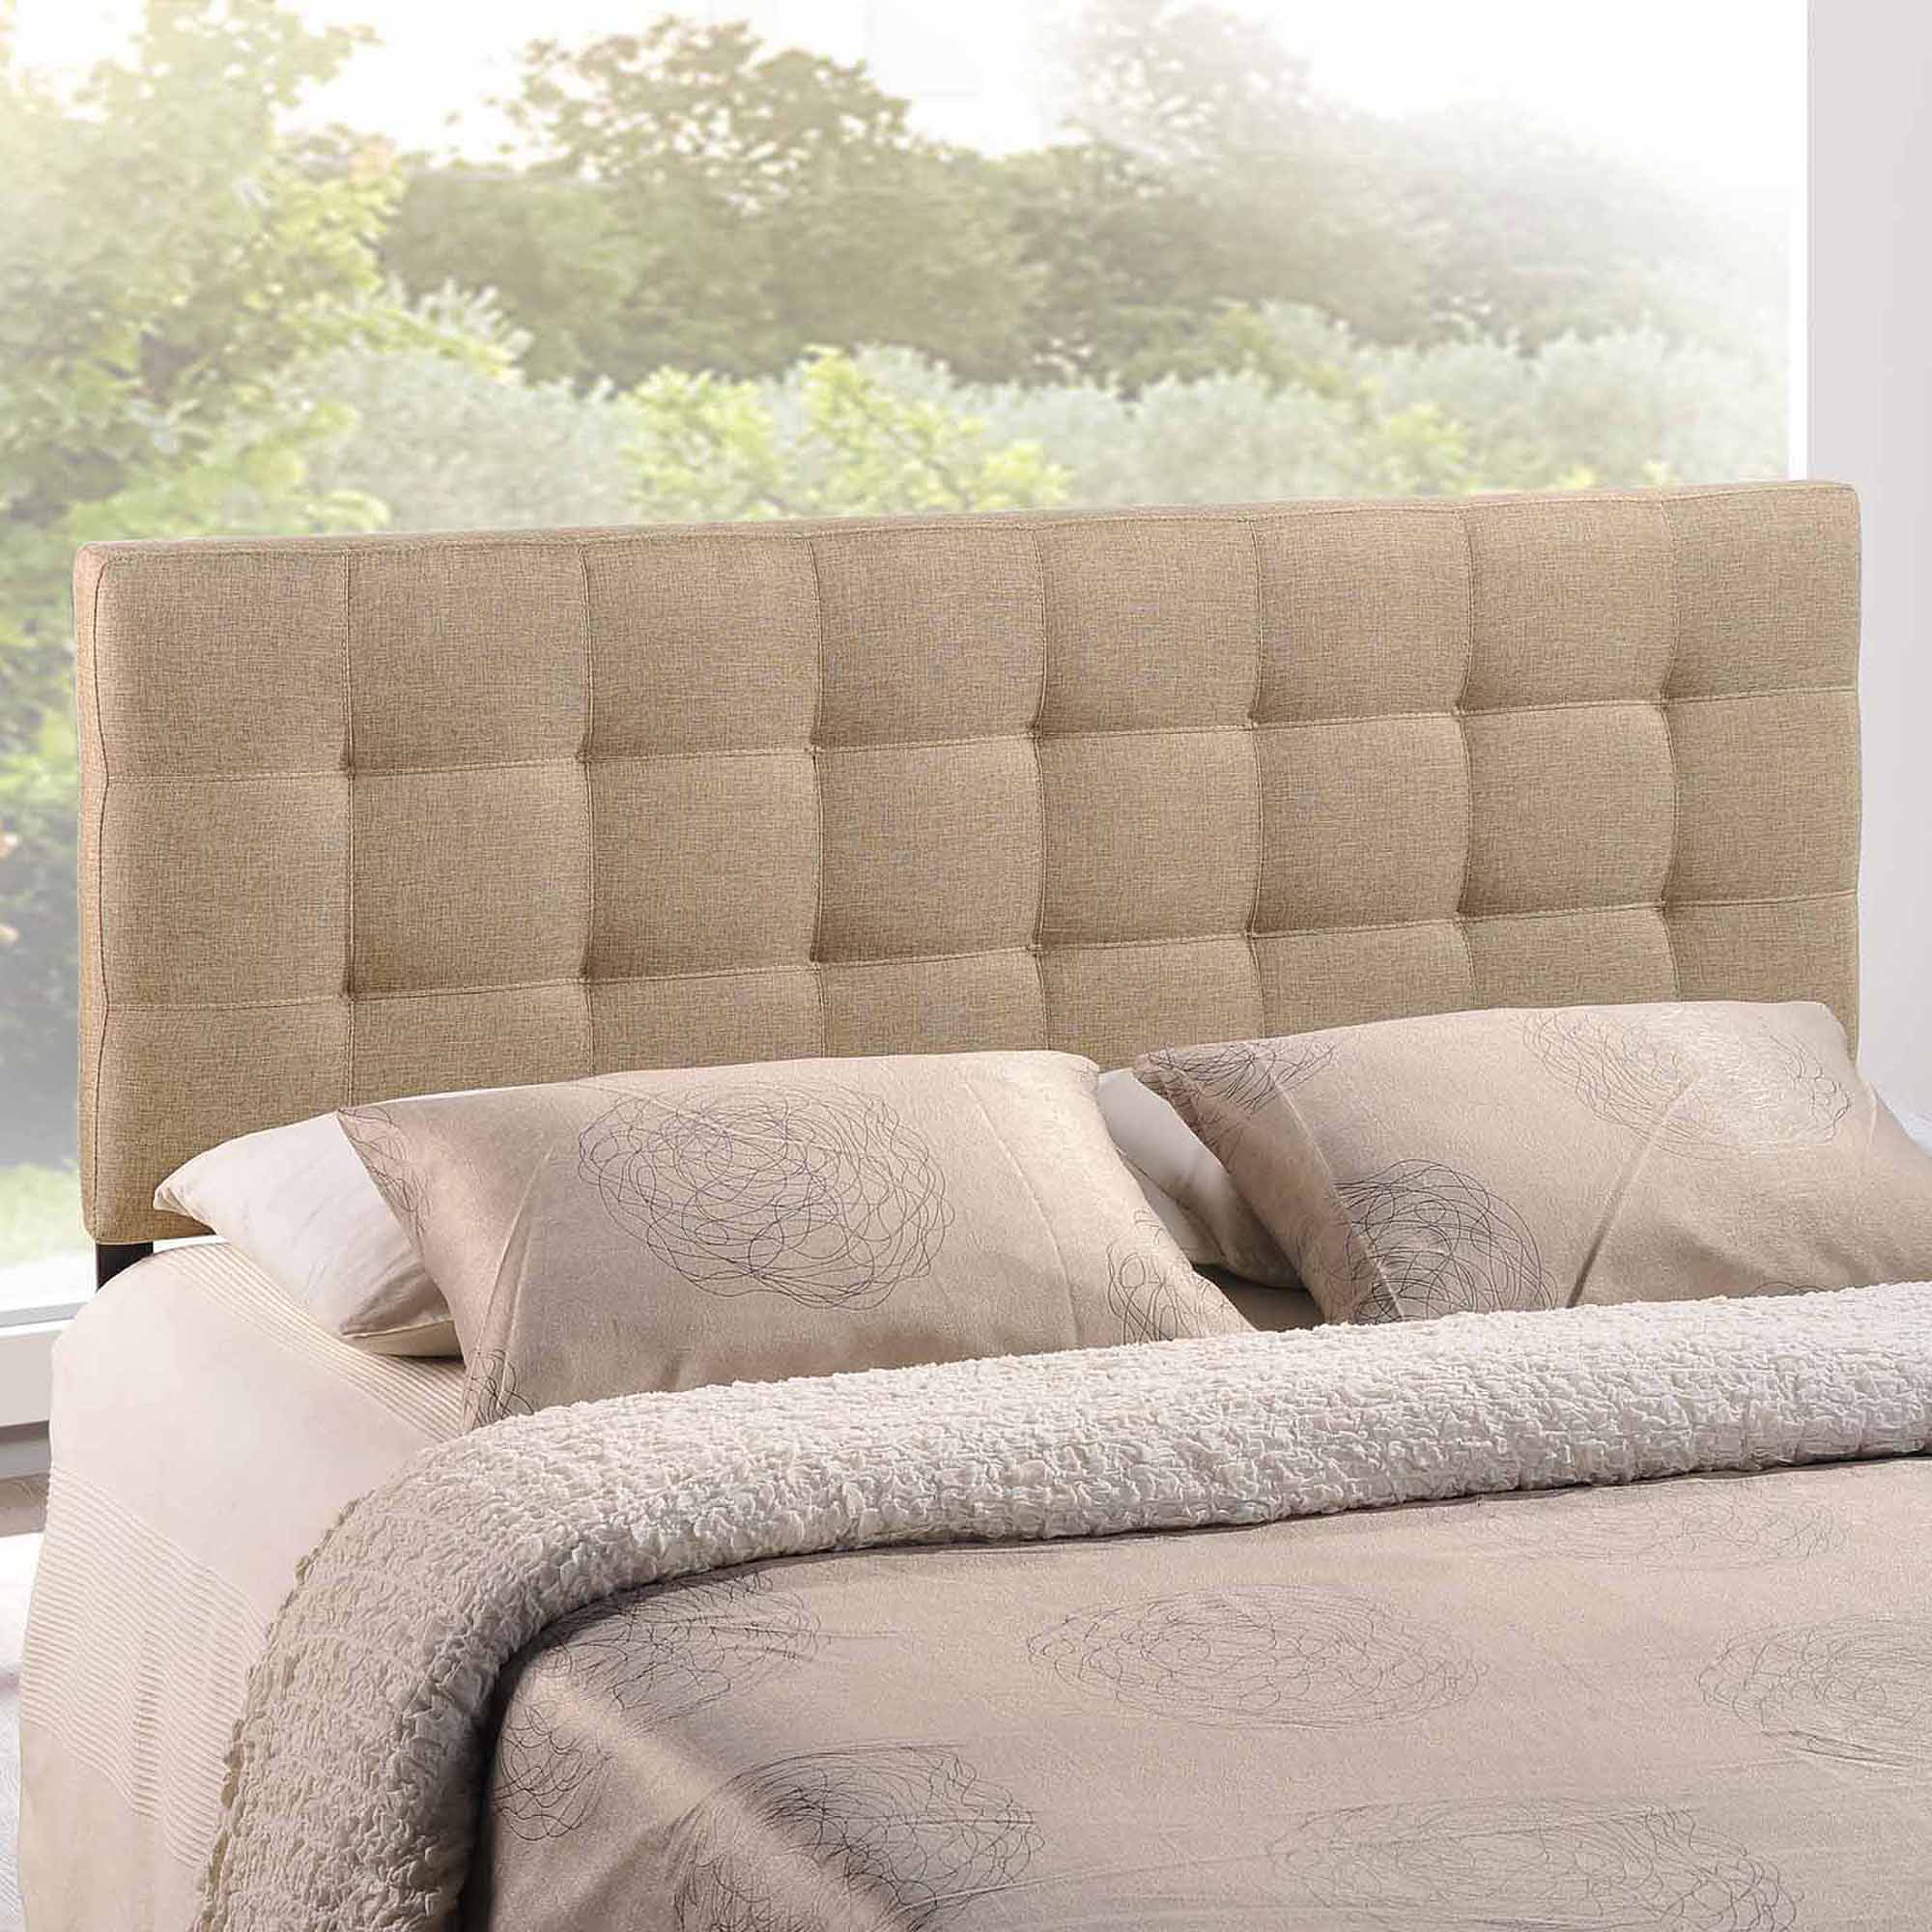 astounding solid headboards wood residence inside size beds made bedroom headboard bed of your brown inspiration king with